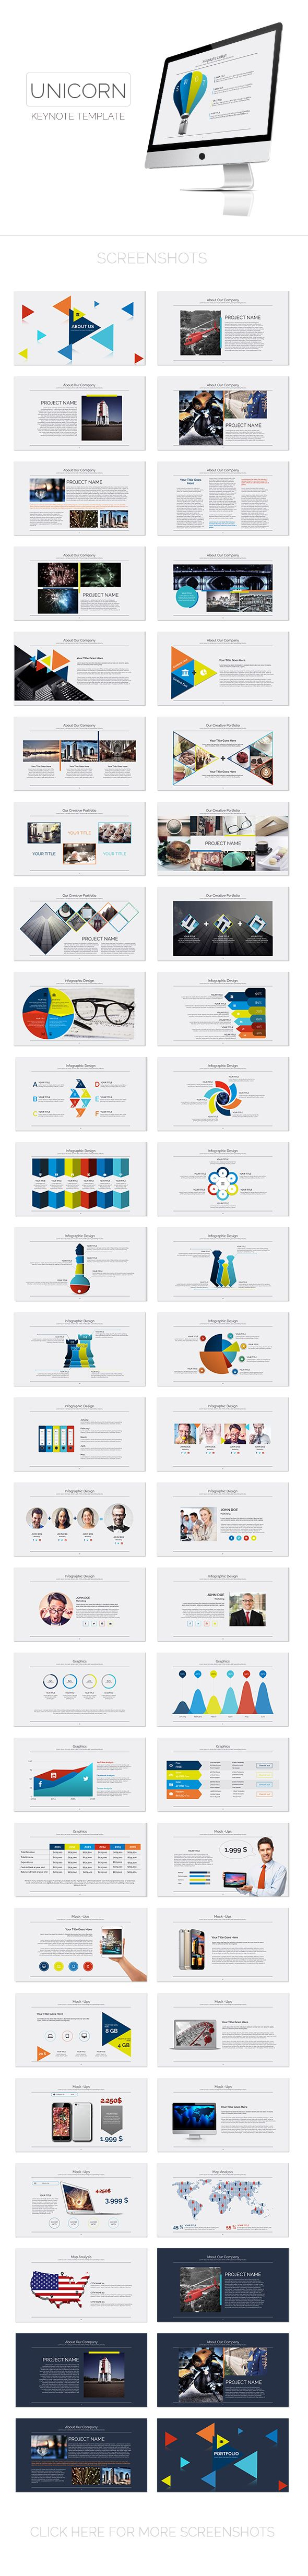 Unicorn Keynote Template. Download here: http://graphicriver.net/item/unicorn-keynote-template/15498392?ref=ksioks